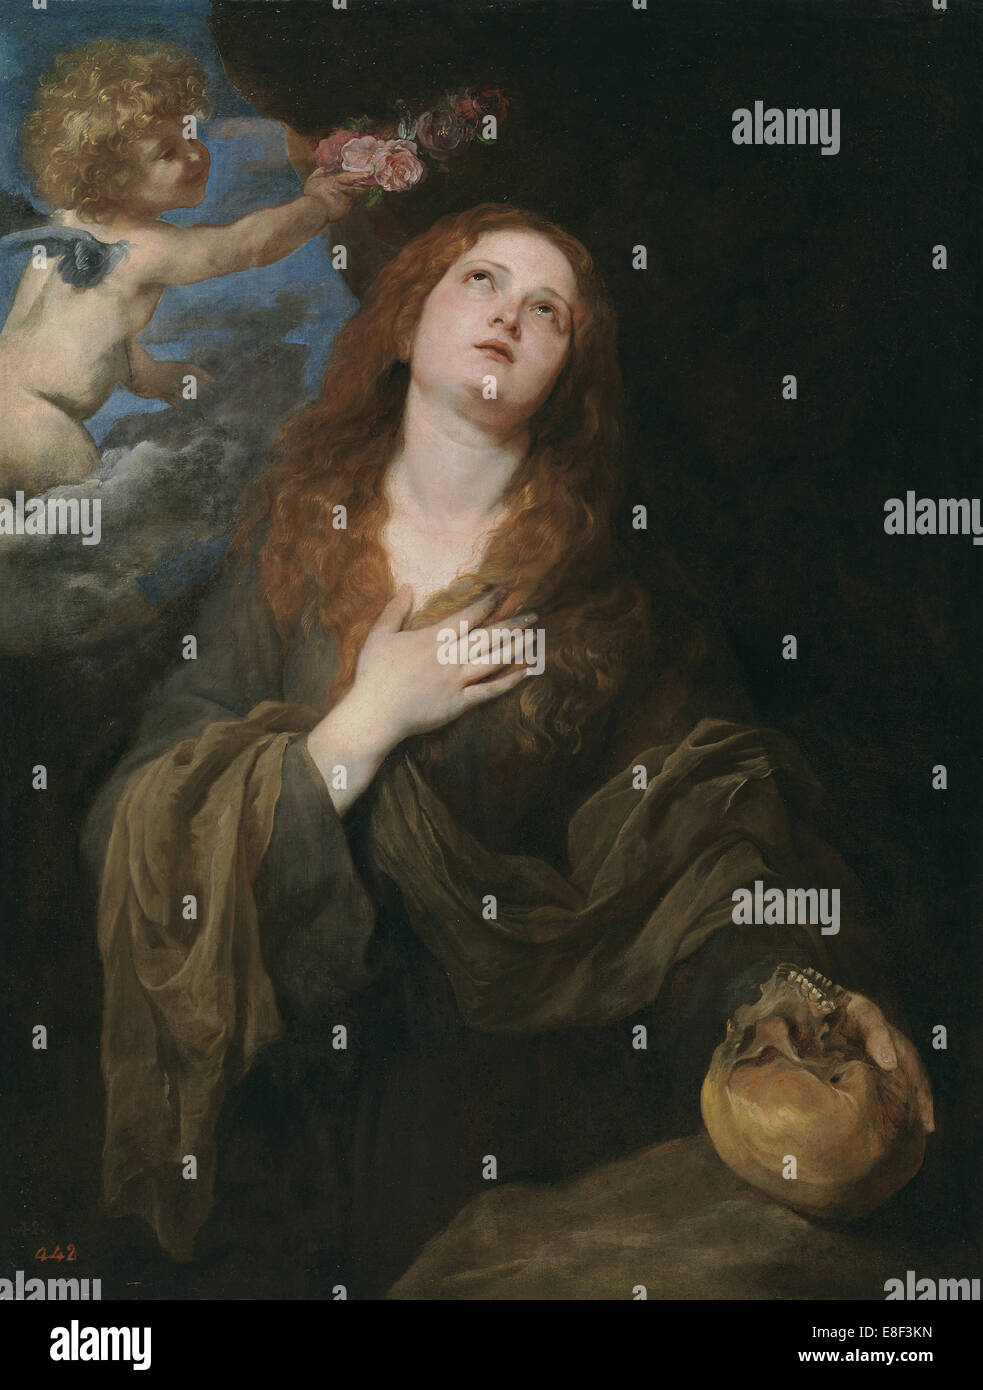 Saint Rosalia. Artist: Dyck, Sir Anthony van (1599-1641) - Stock Image